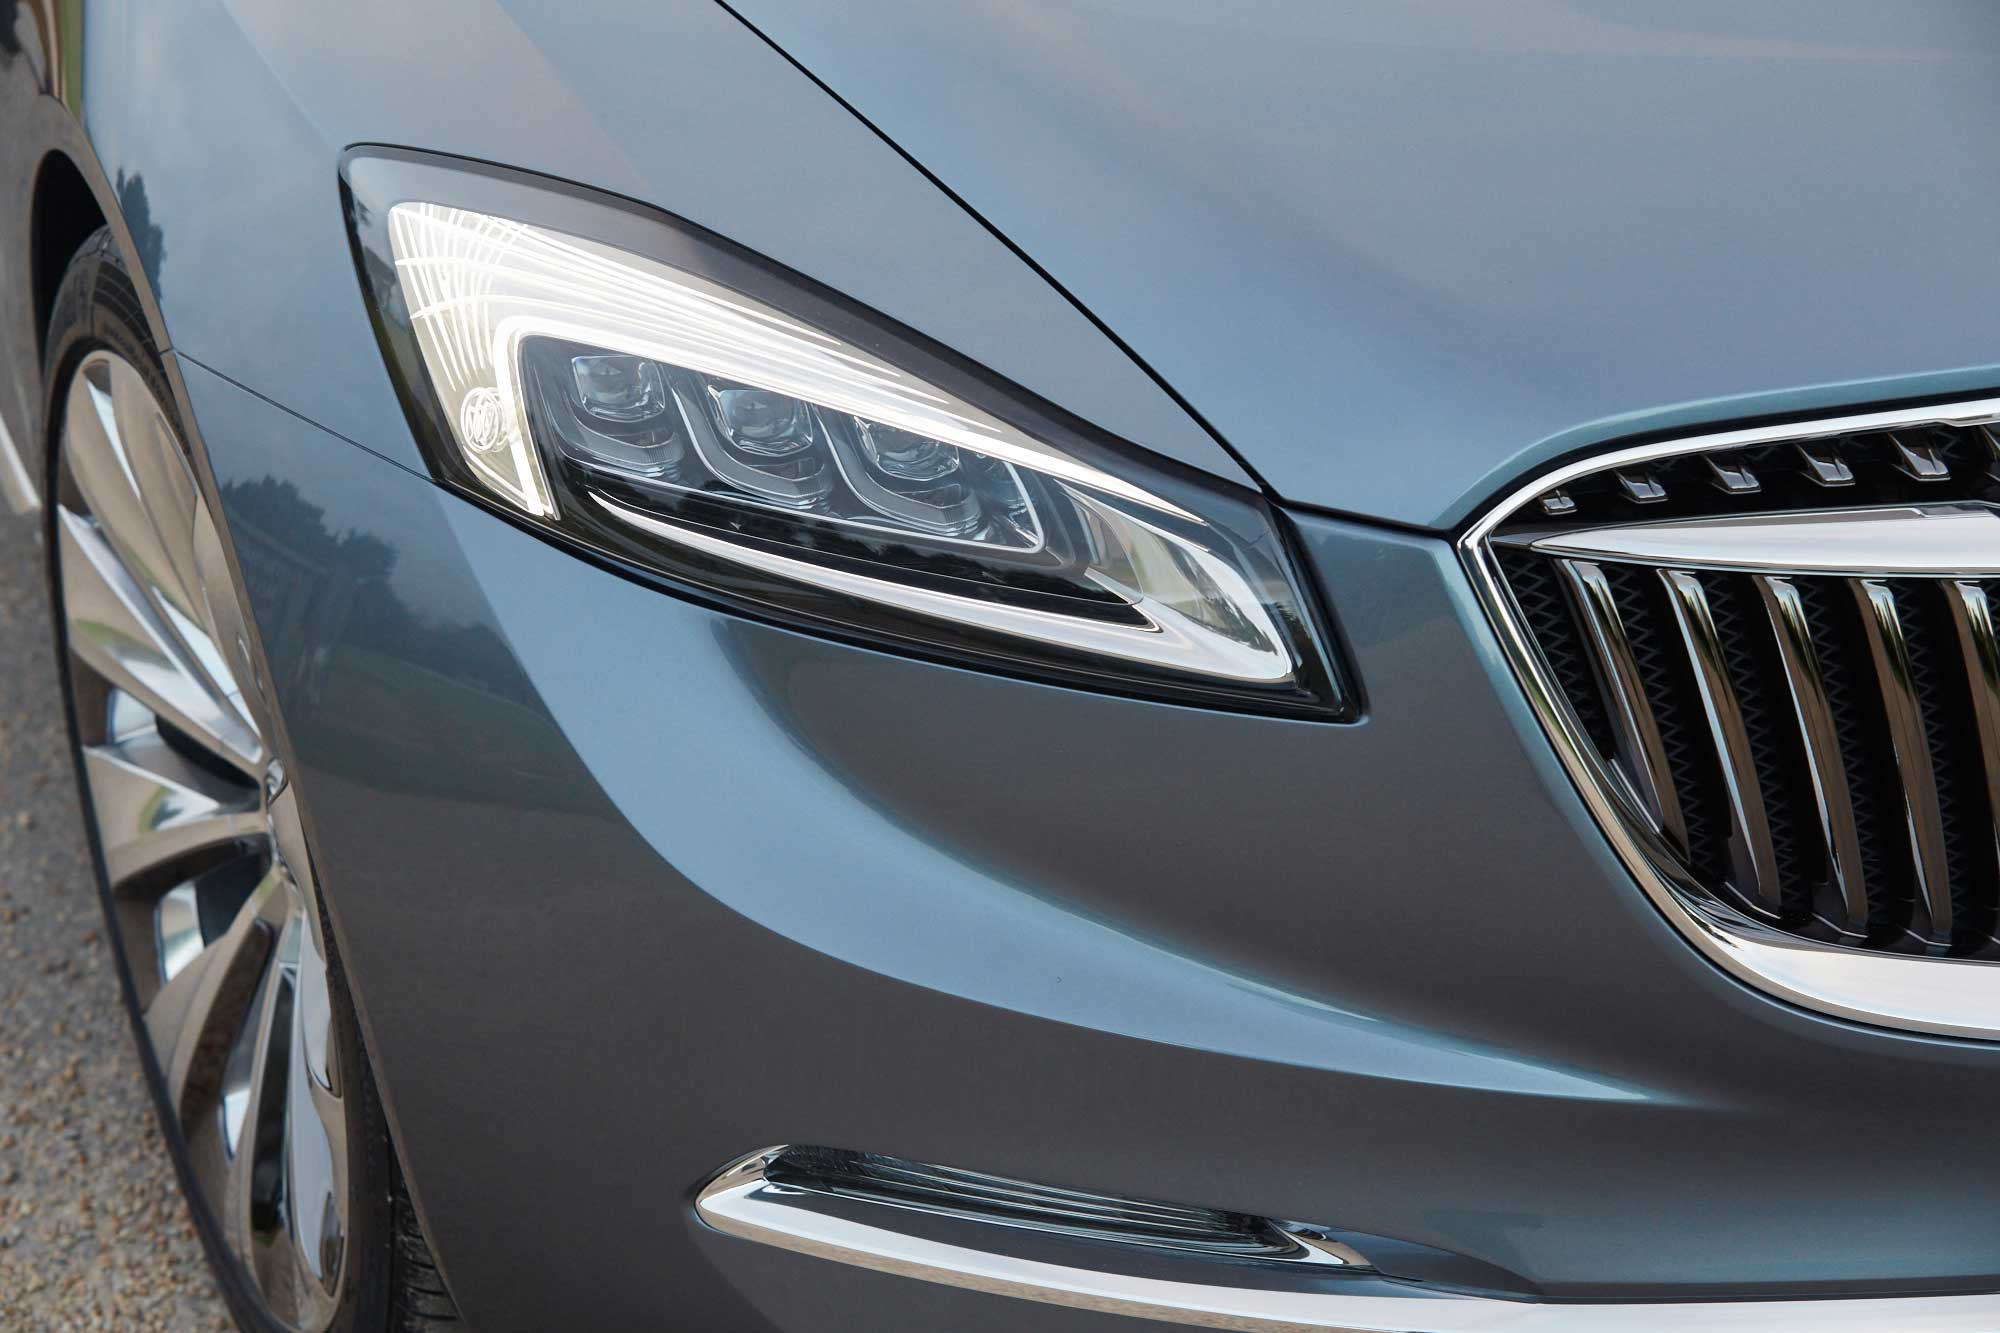 Avenir's Advanced Lighting Illuminates Future Buick Design